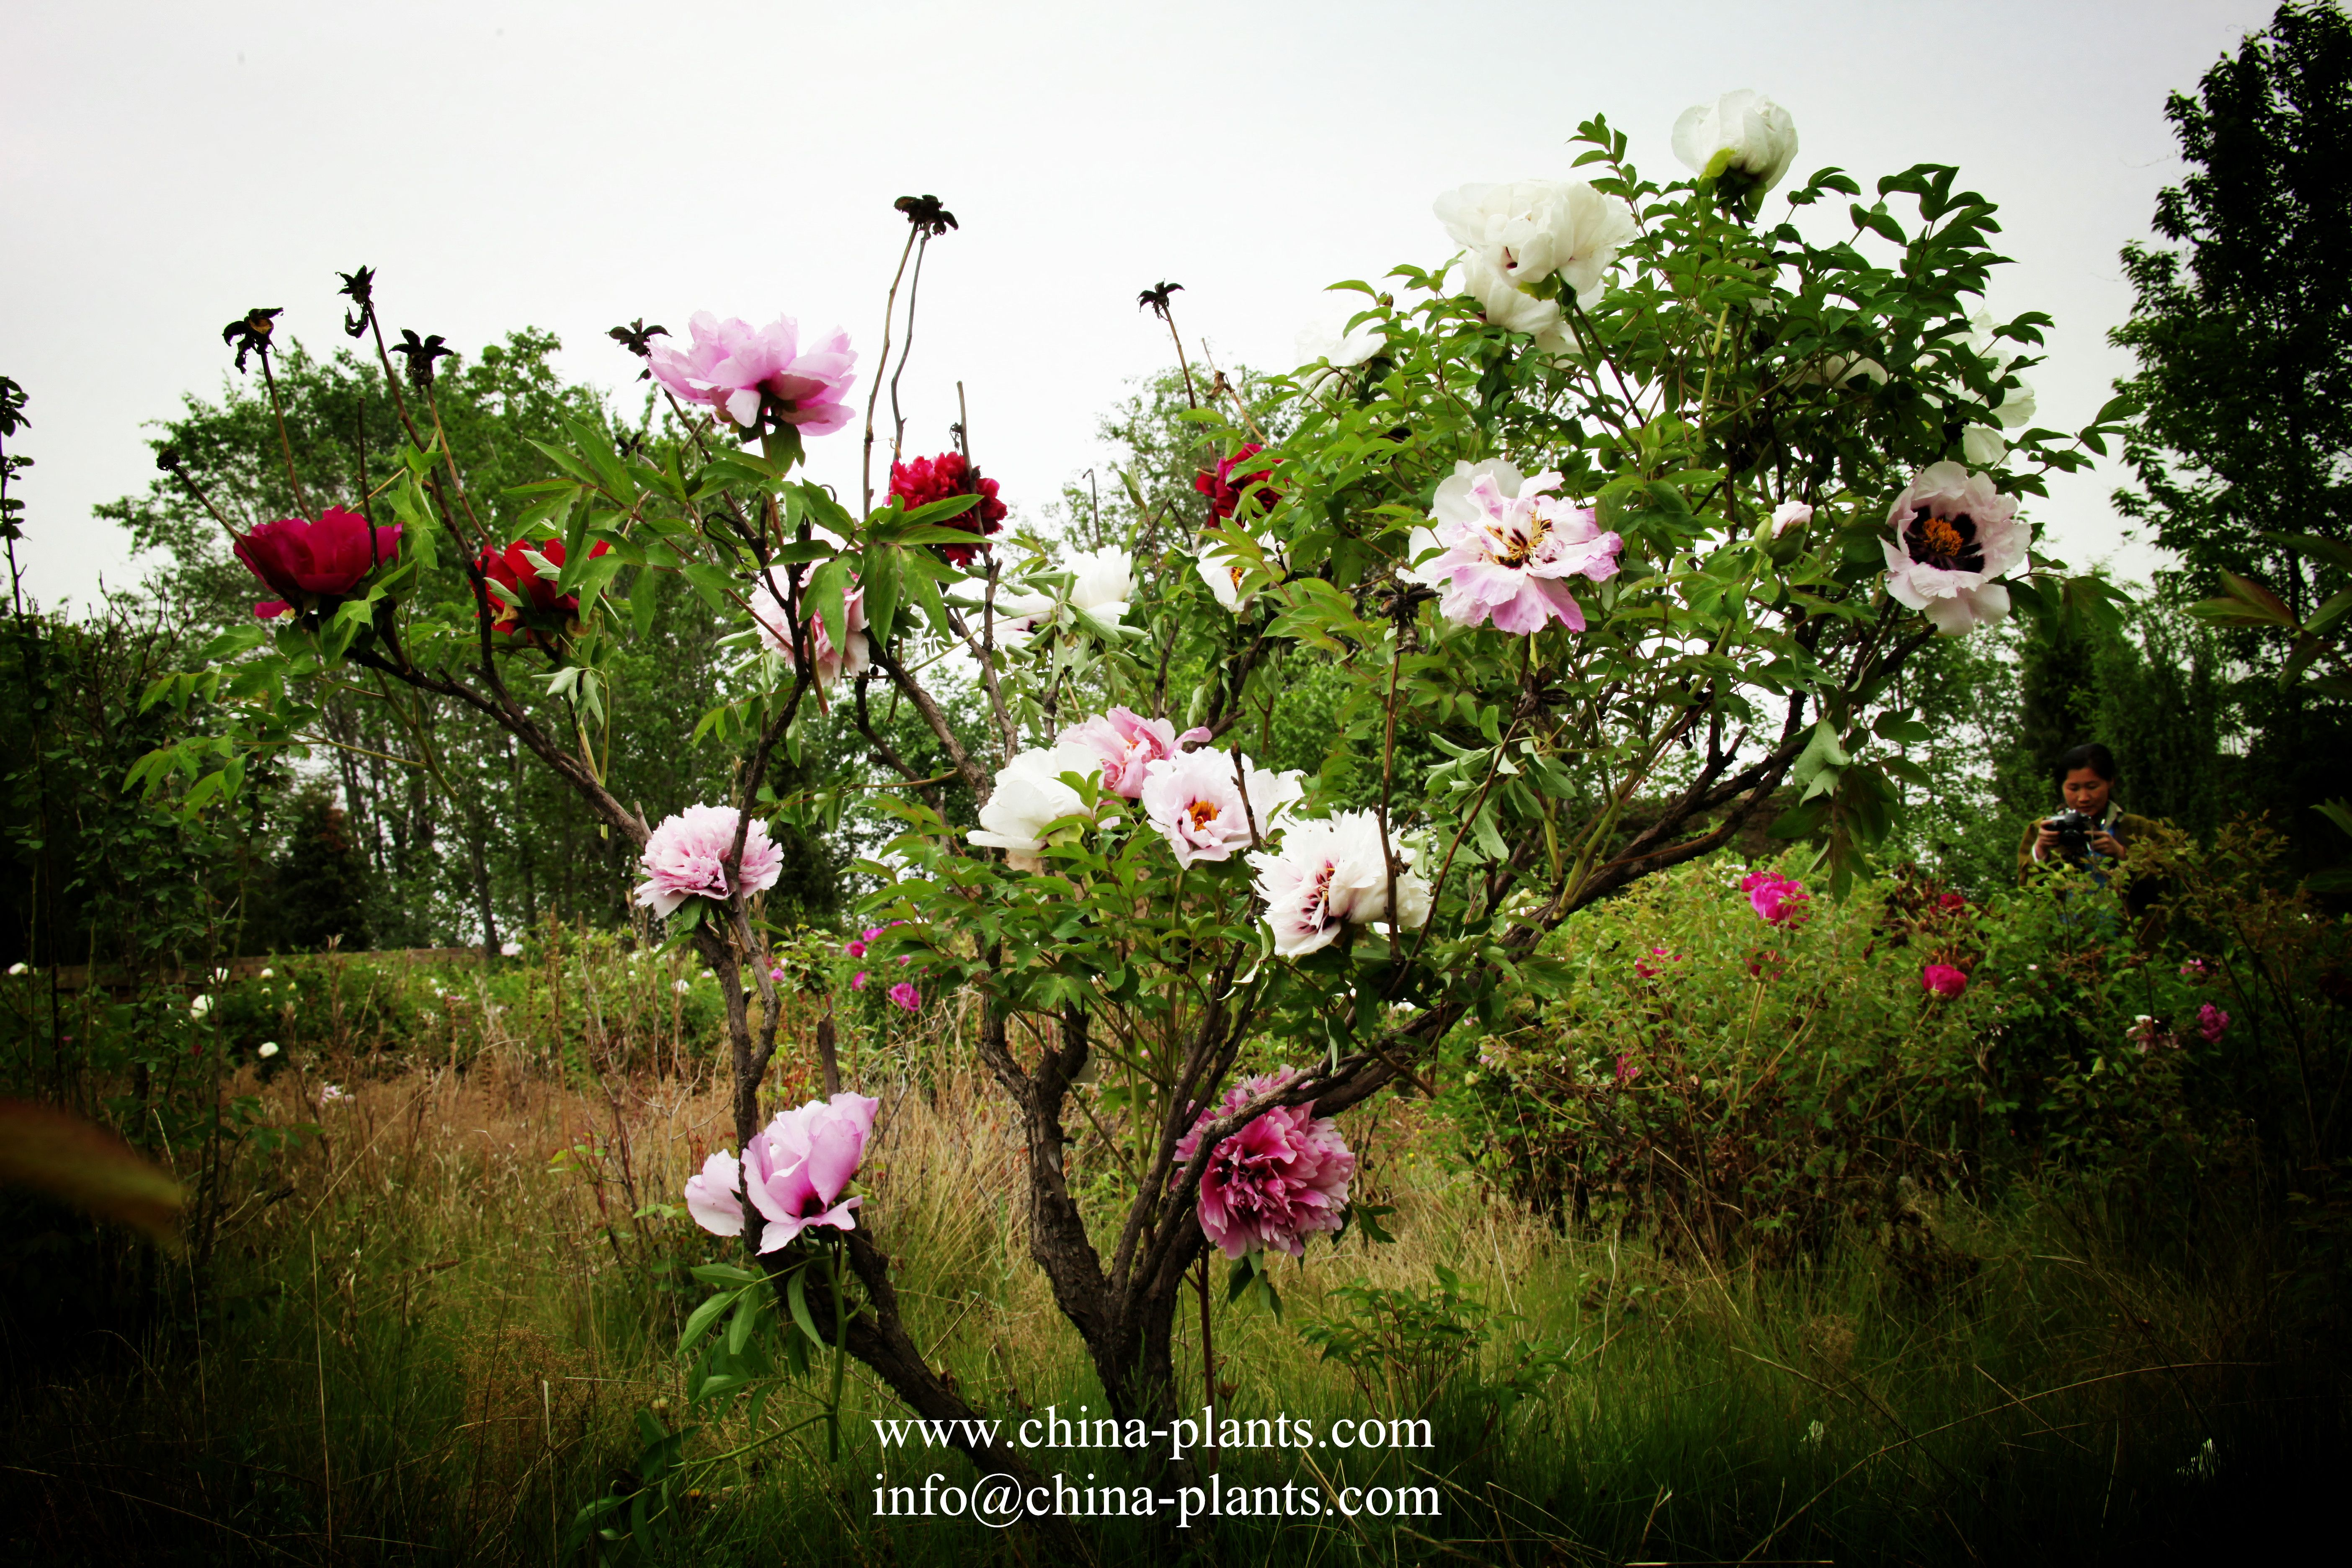 Cultivated by experts of Gansu Zhongchuan Peony Nursery, assorted paeonia rockii will bloom in may, 2015 again. The main character of Assorted peonies is 1 plant with multicolor. Particularly, 1 plant can get over 8 different flowers with different colors and cultivars. We have to say assorted peonies is a miracle in Gansu Zhongchuan Peony Nursery.